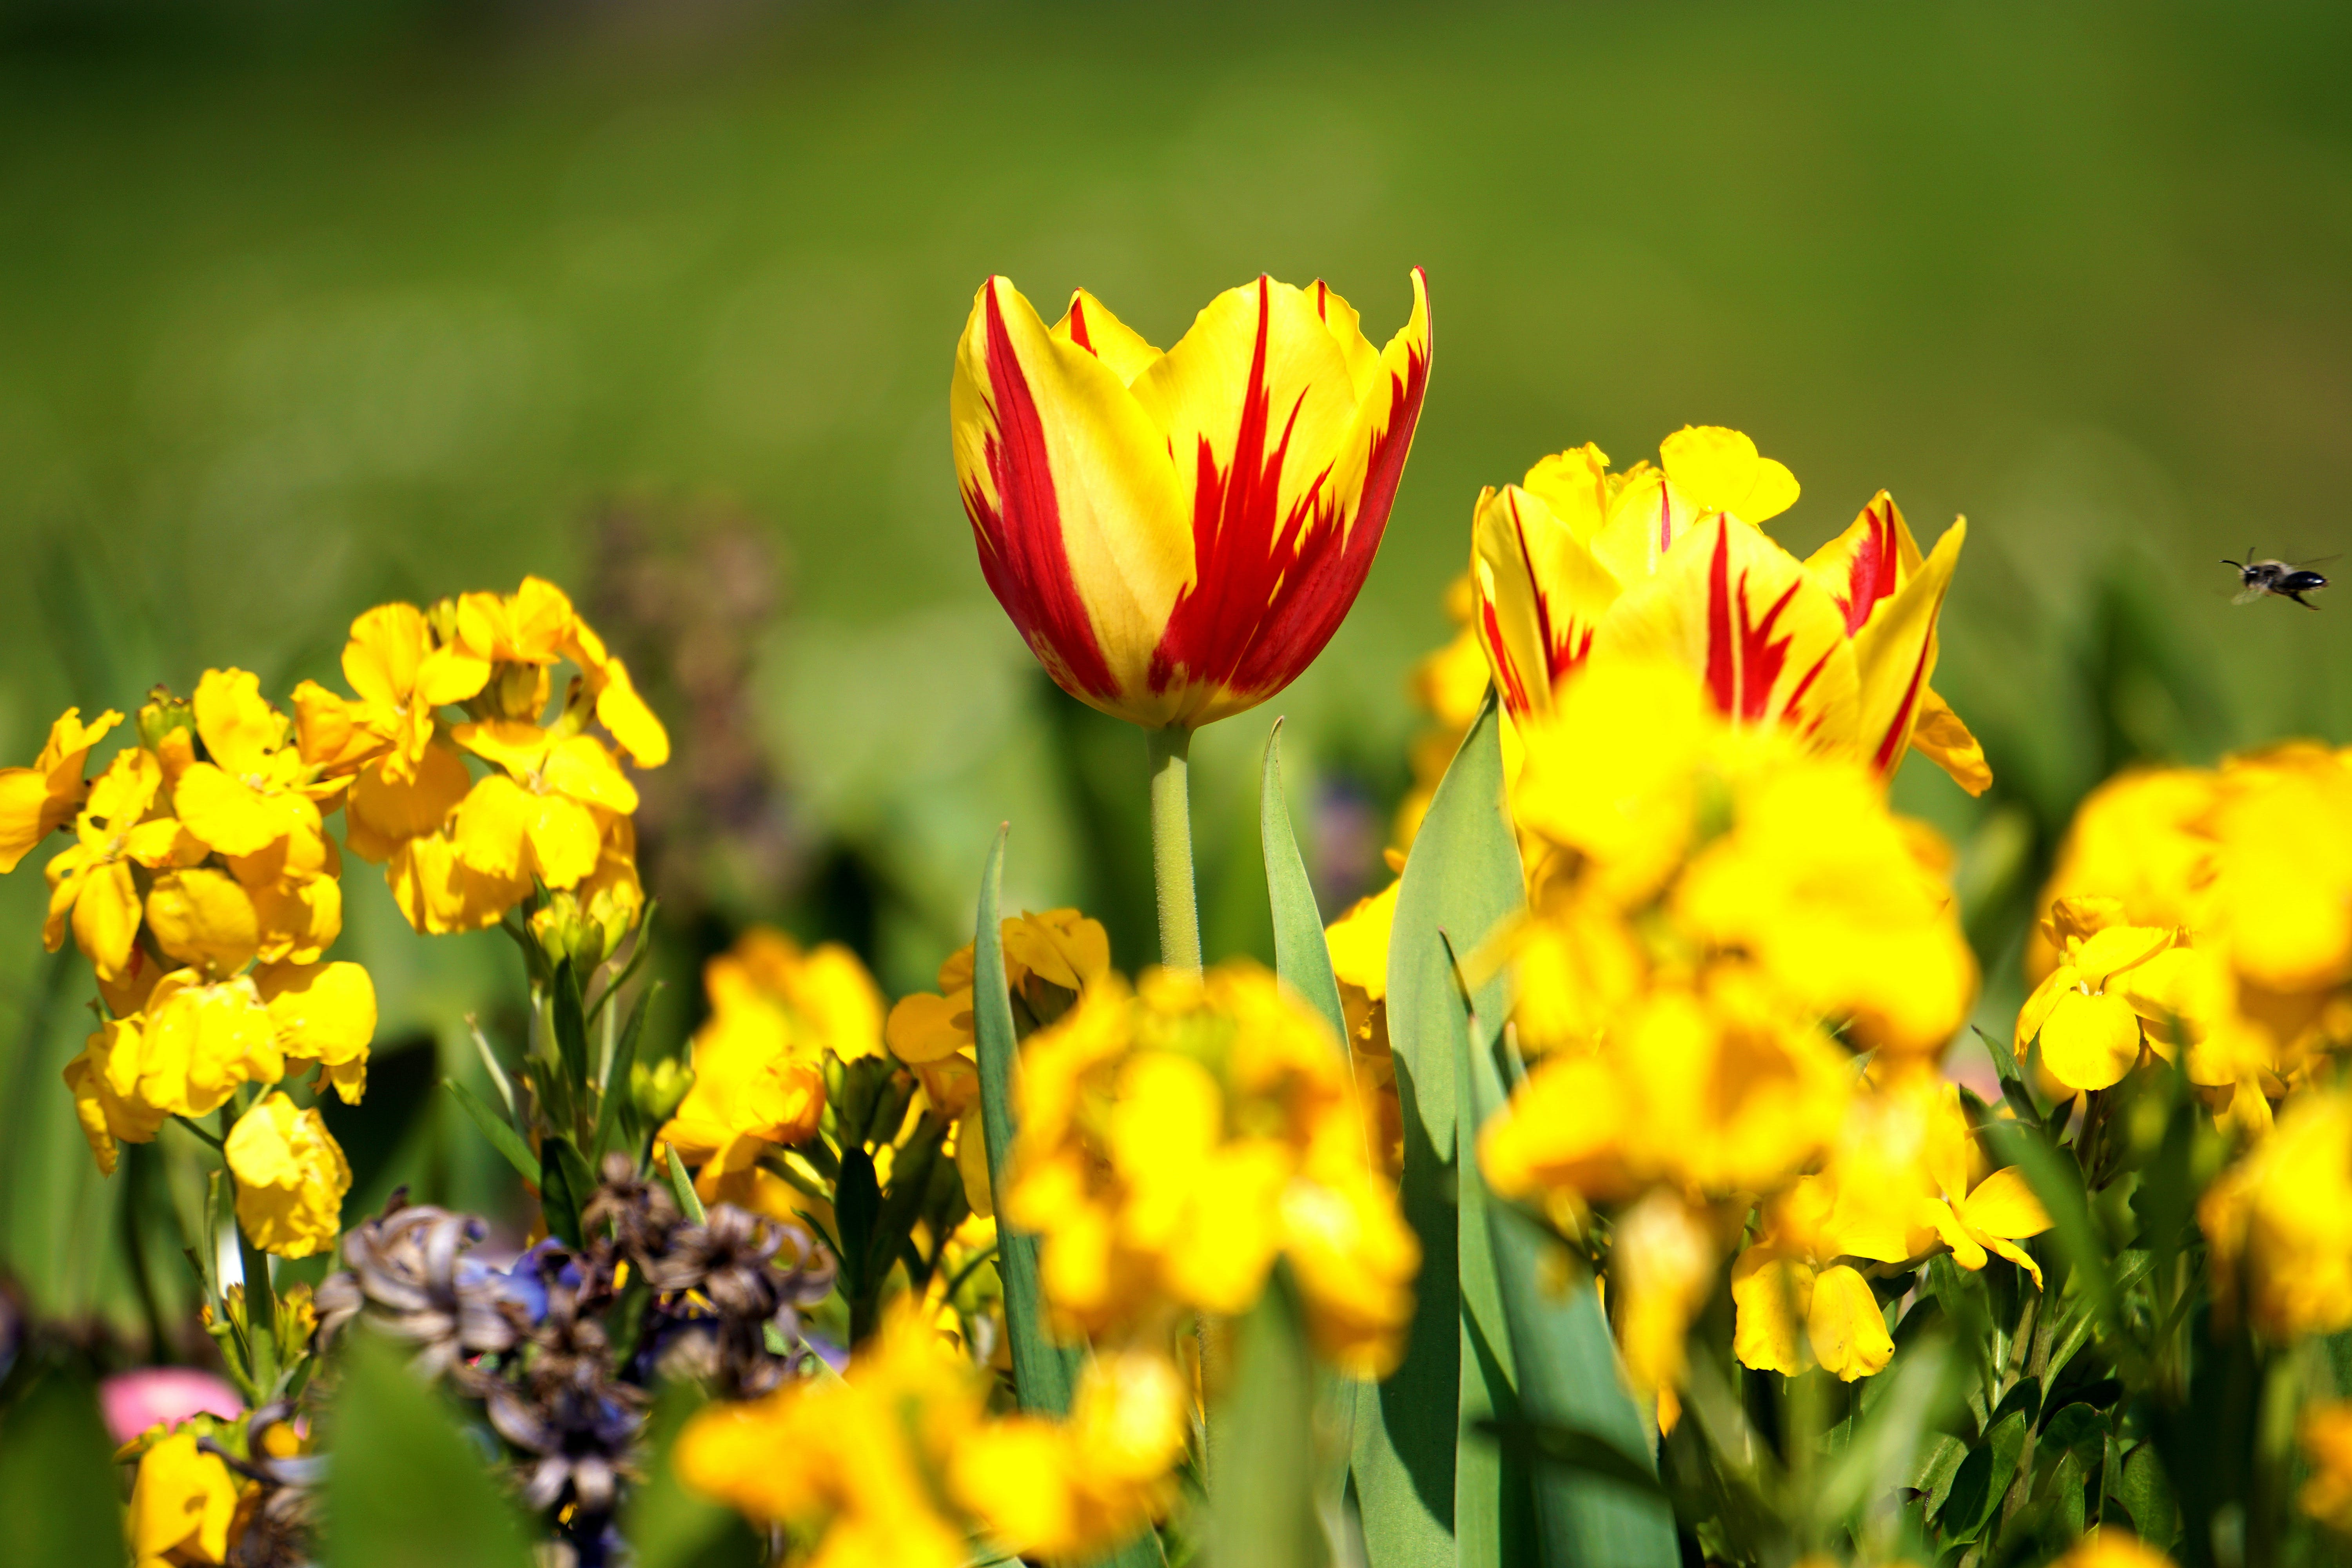 Selective Focus Photography of Yellow Clustered Flowers